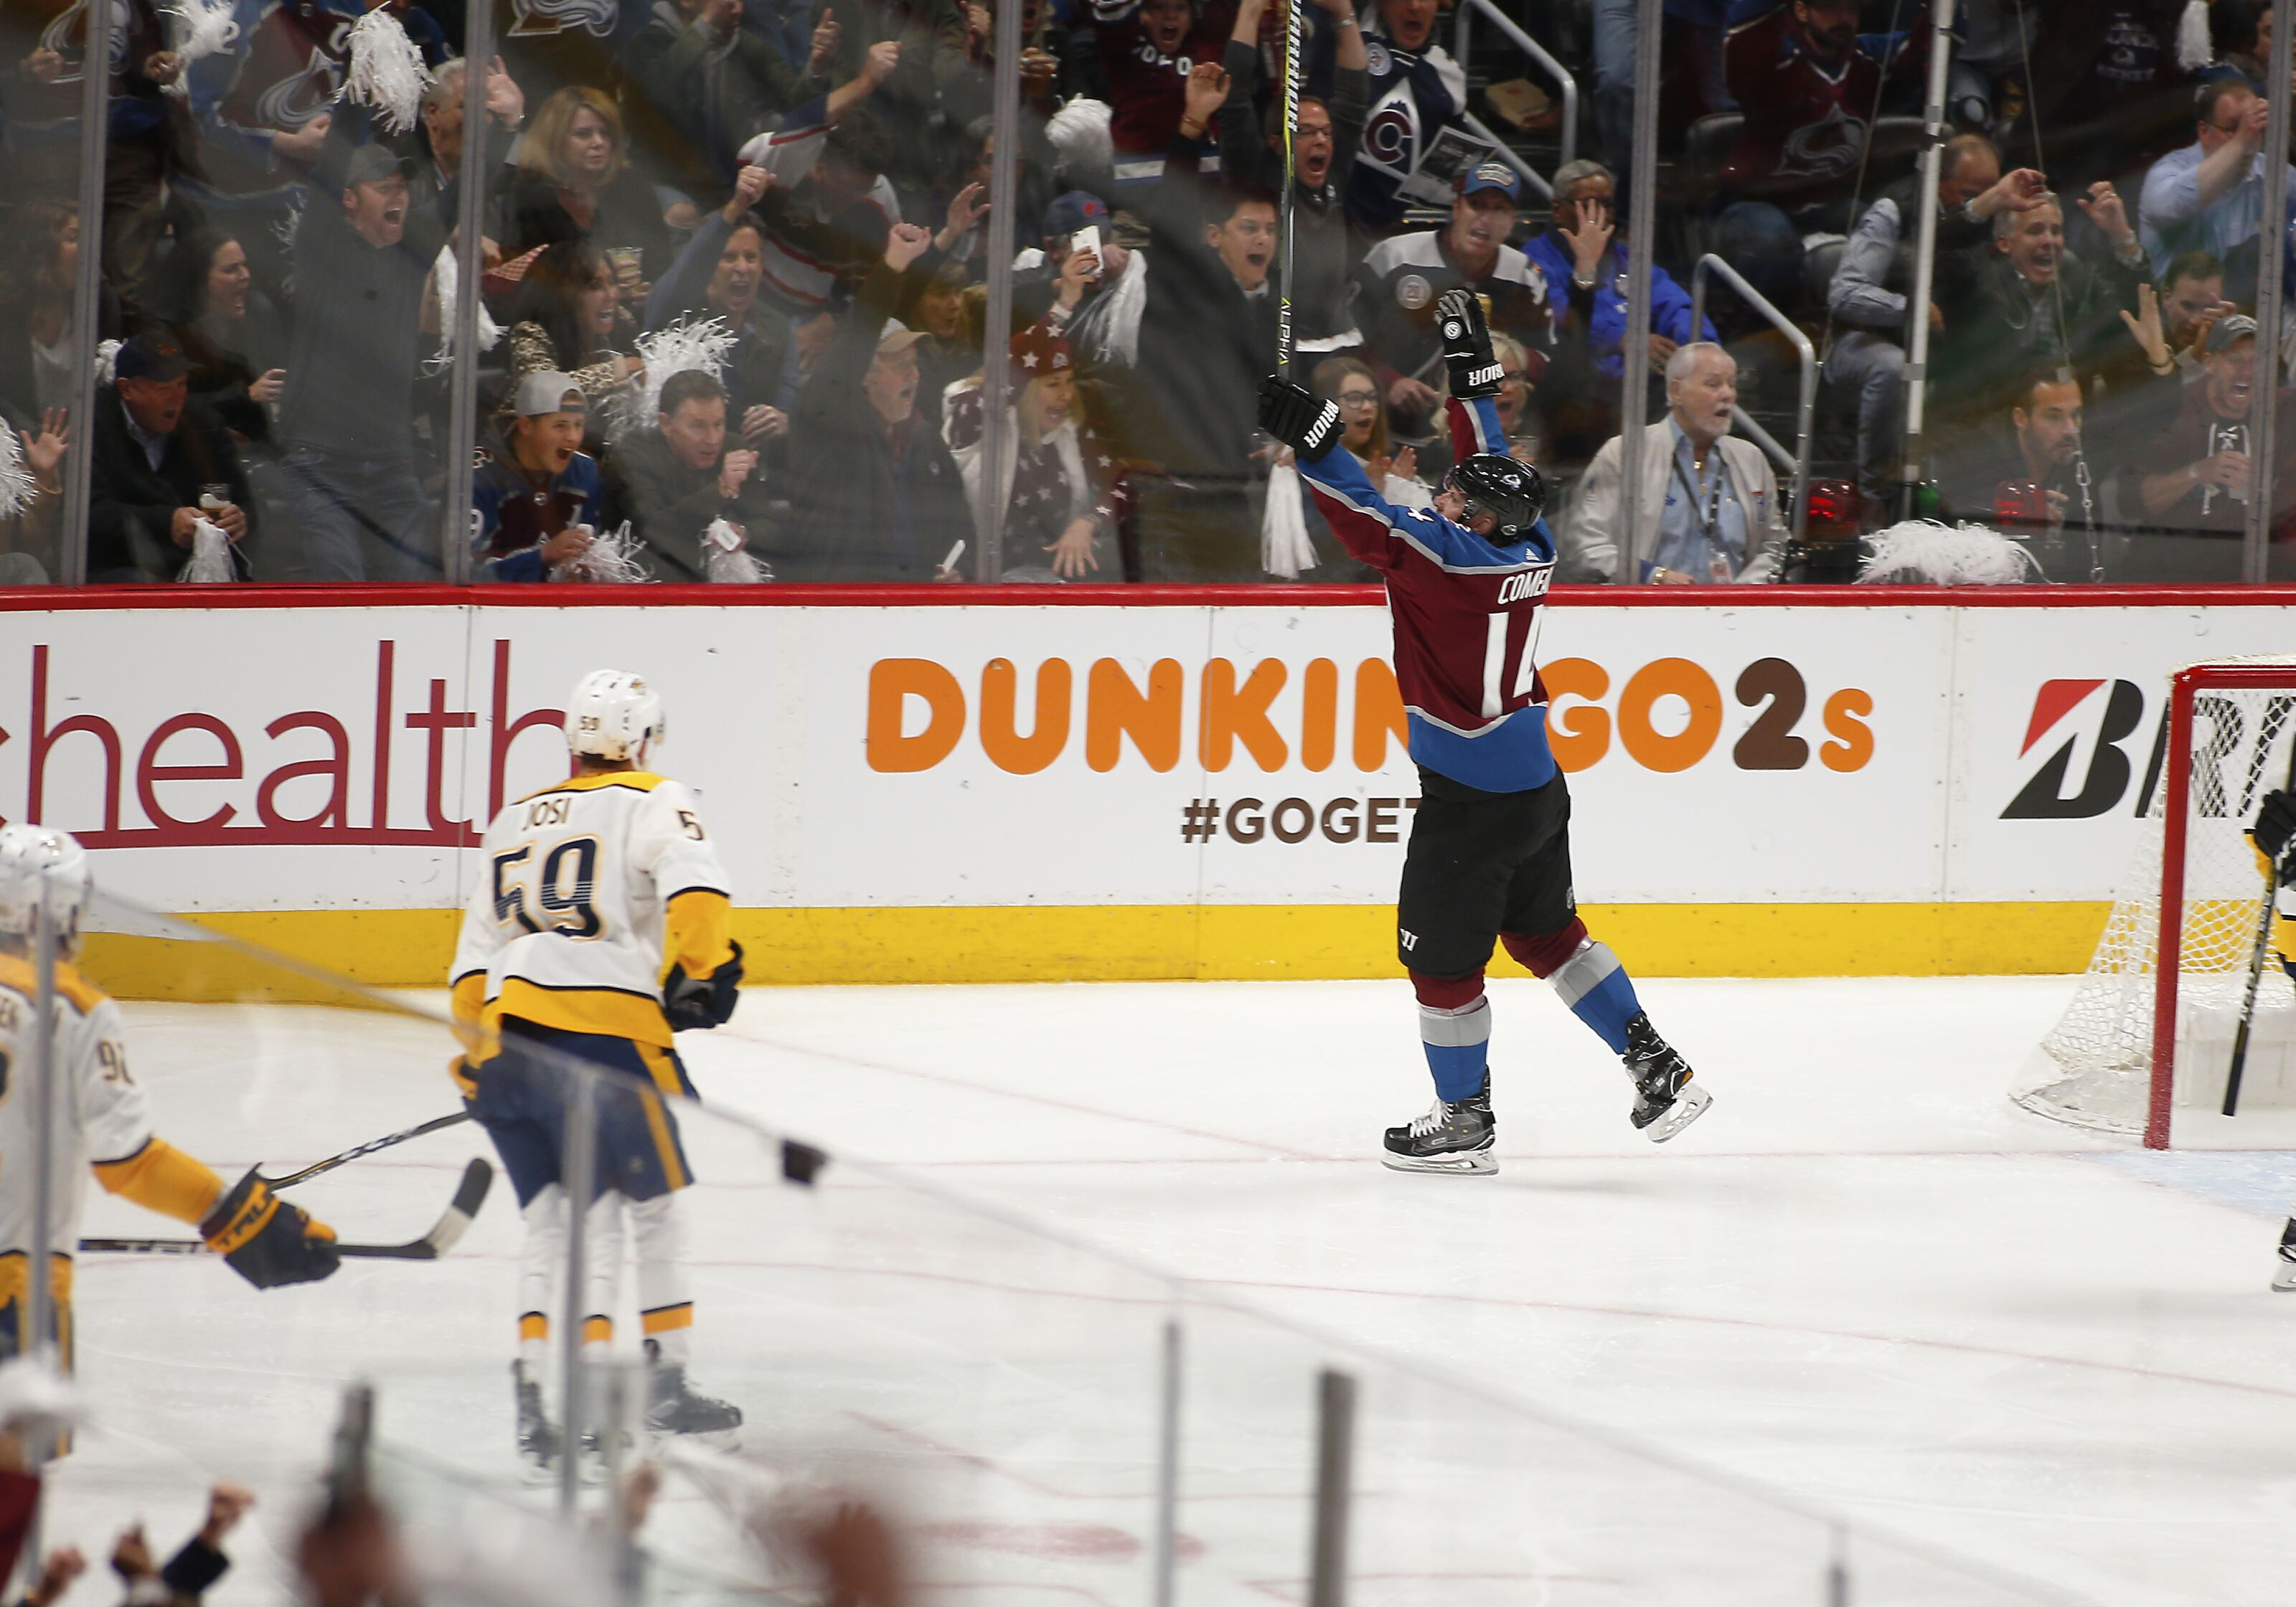 947261394-nhl-apr-16-stanley-cup-playoffs-first-round-game-3-predators-at-avalanche.jpg